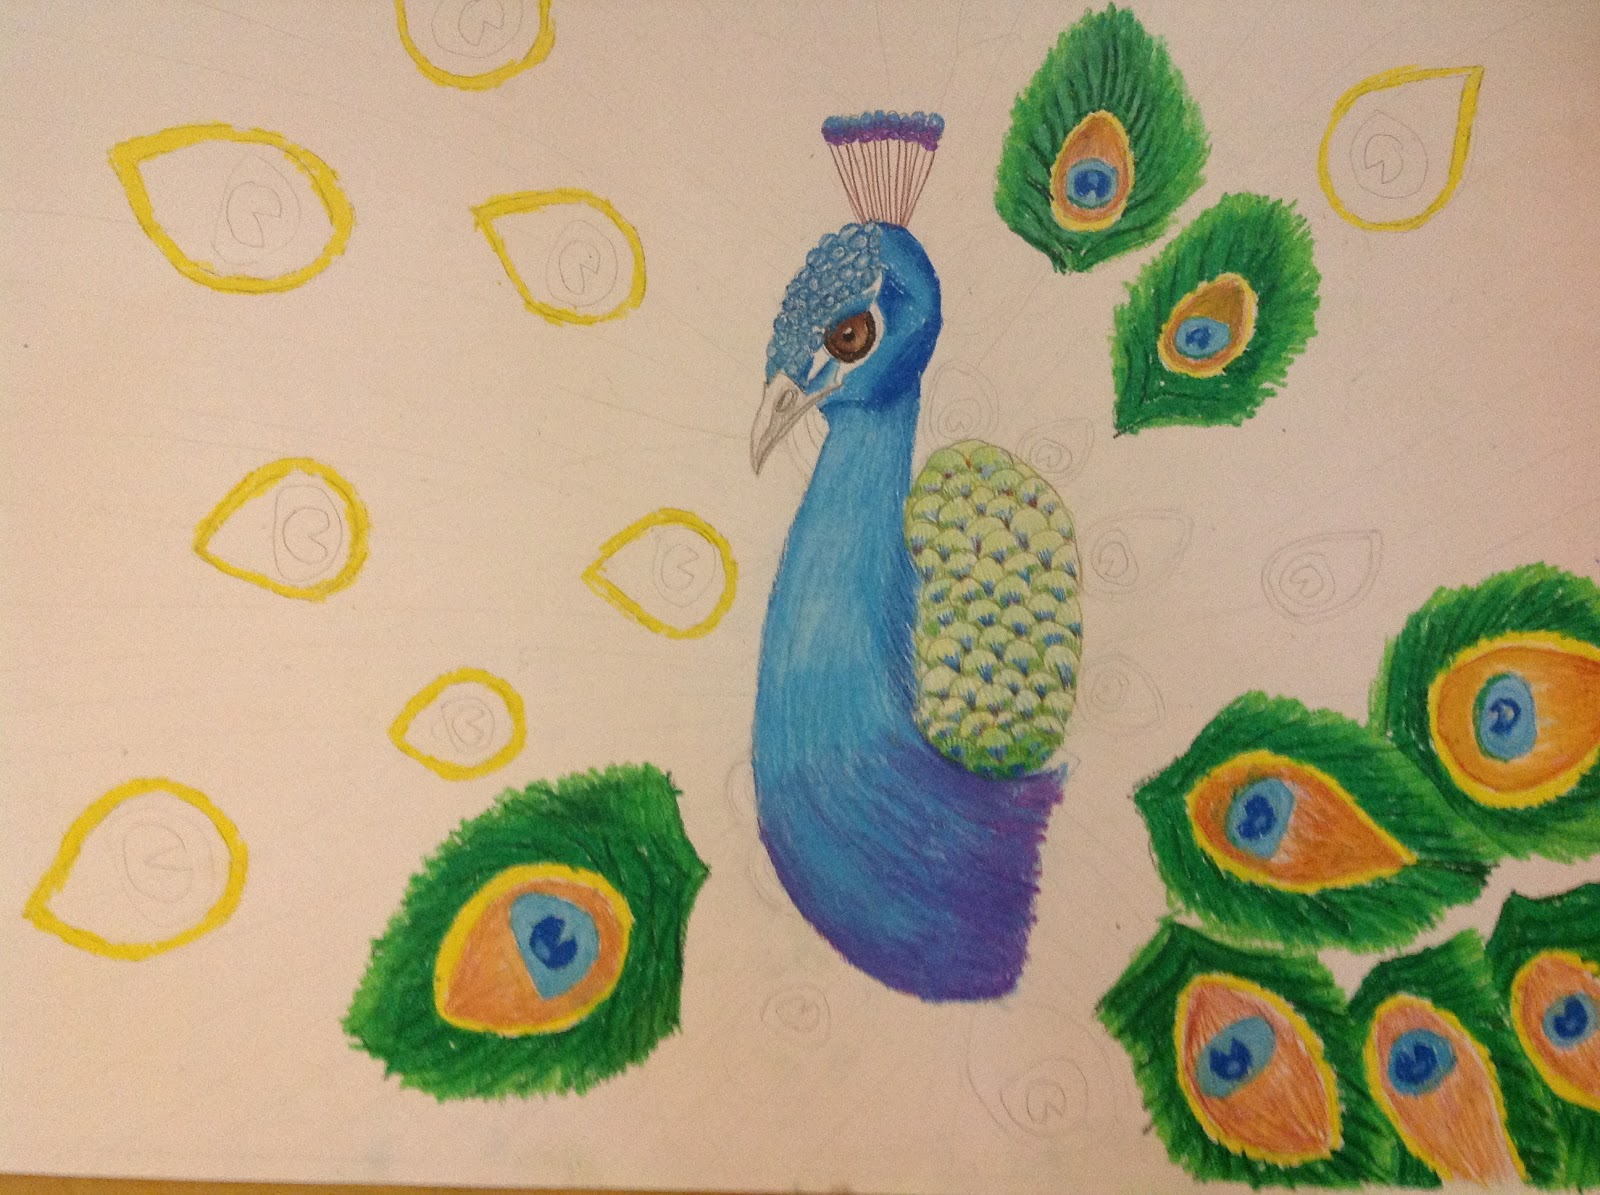 Peacock drawing step by step - photo#14